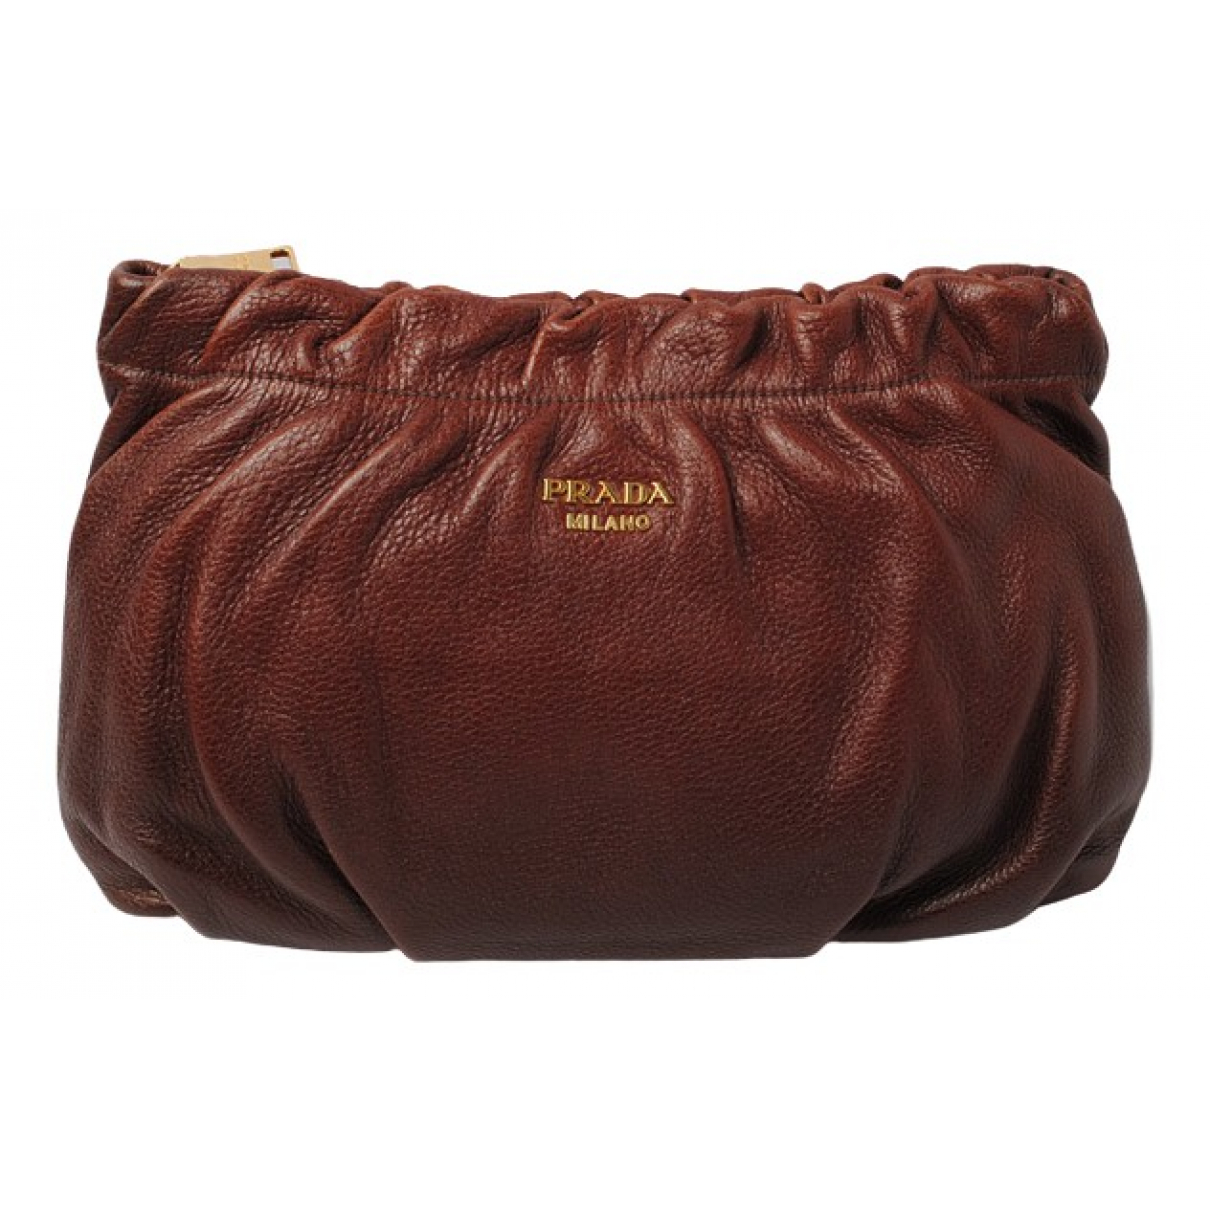 Prada \N Brown Leather Clutch bag for Women \N